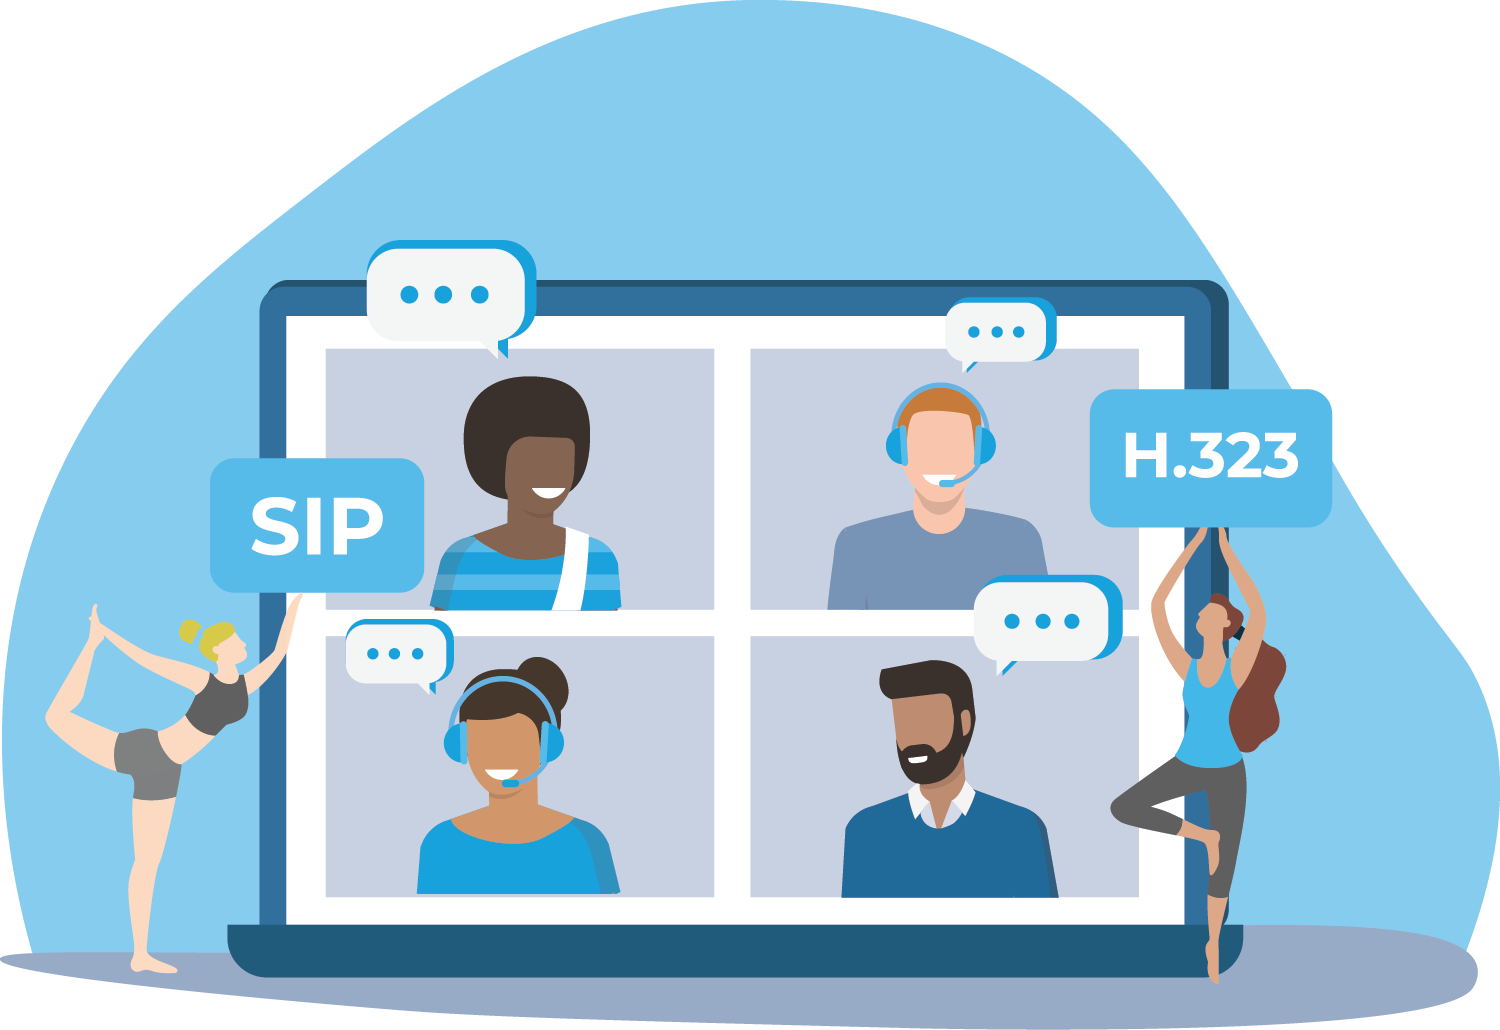 Connect WebRTC with H.323 devices and SIP providers.